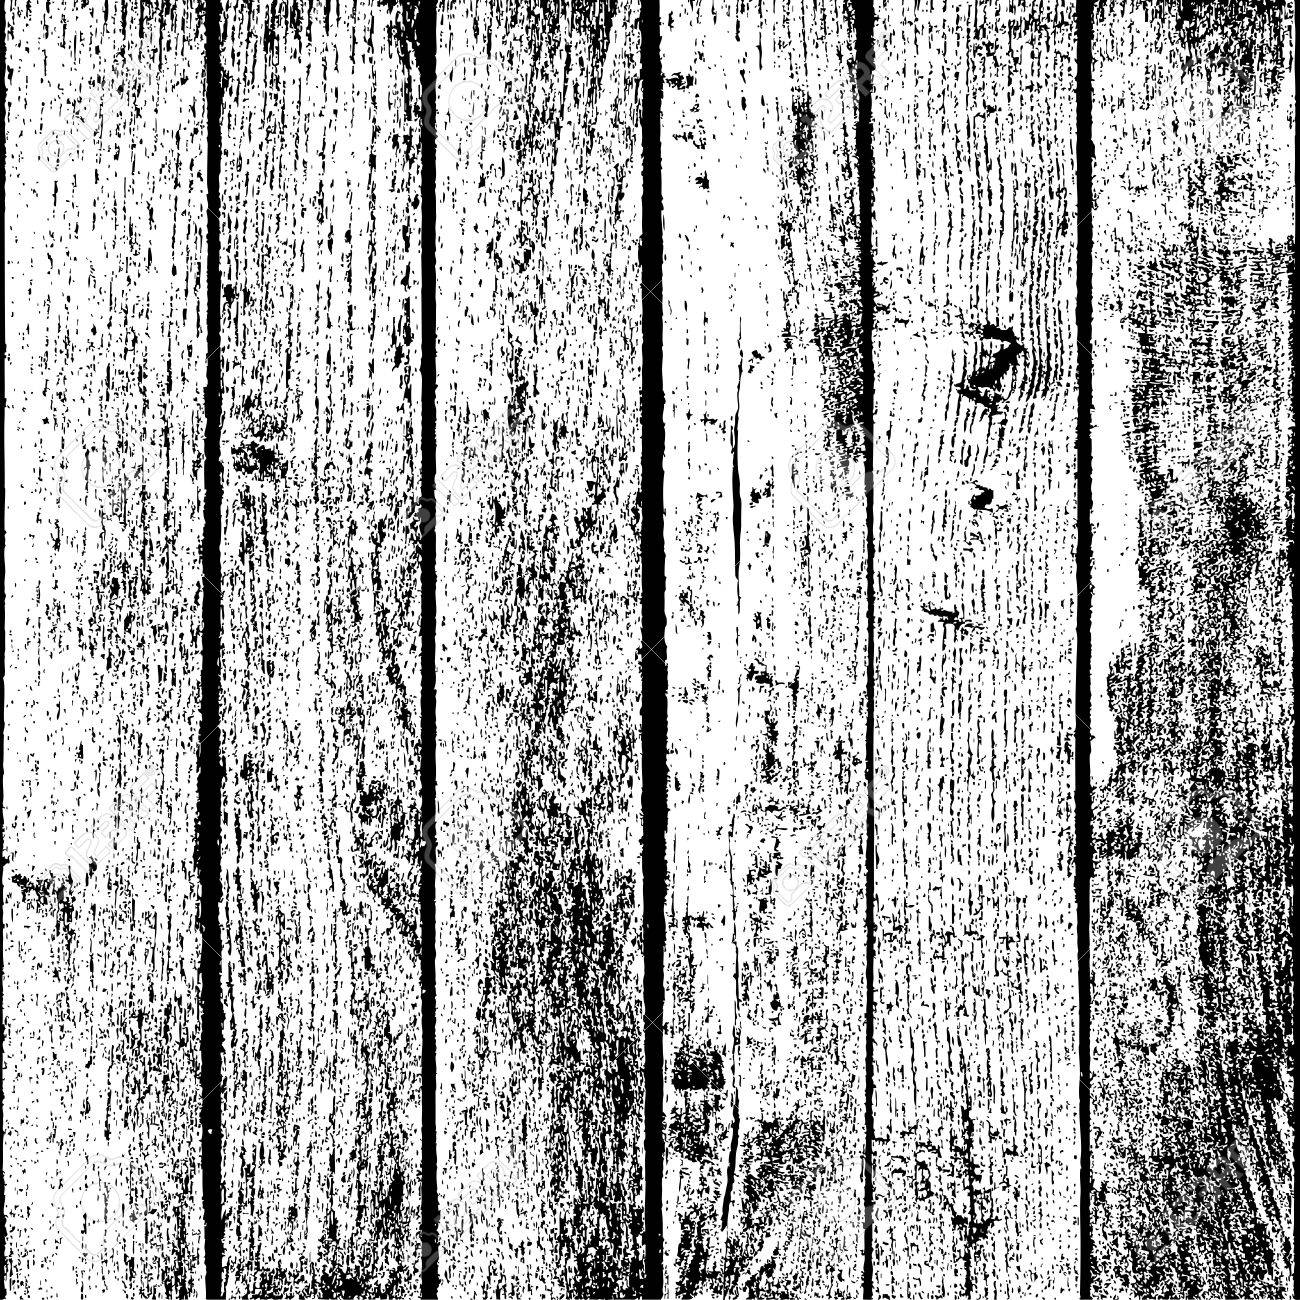 Wooden Planks - Overlay Texture, Vertical Distressed Wooden ...